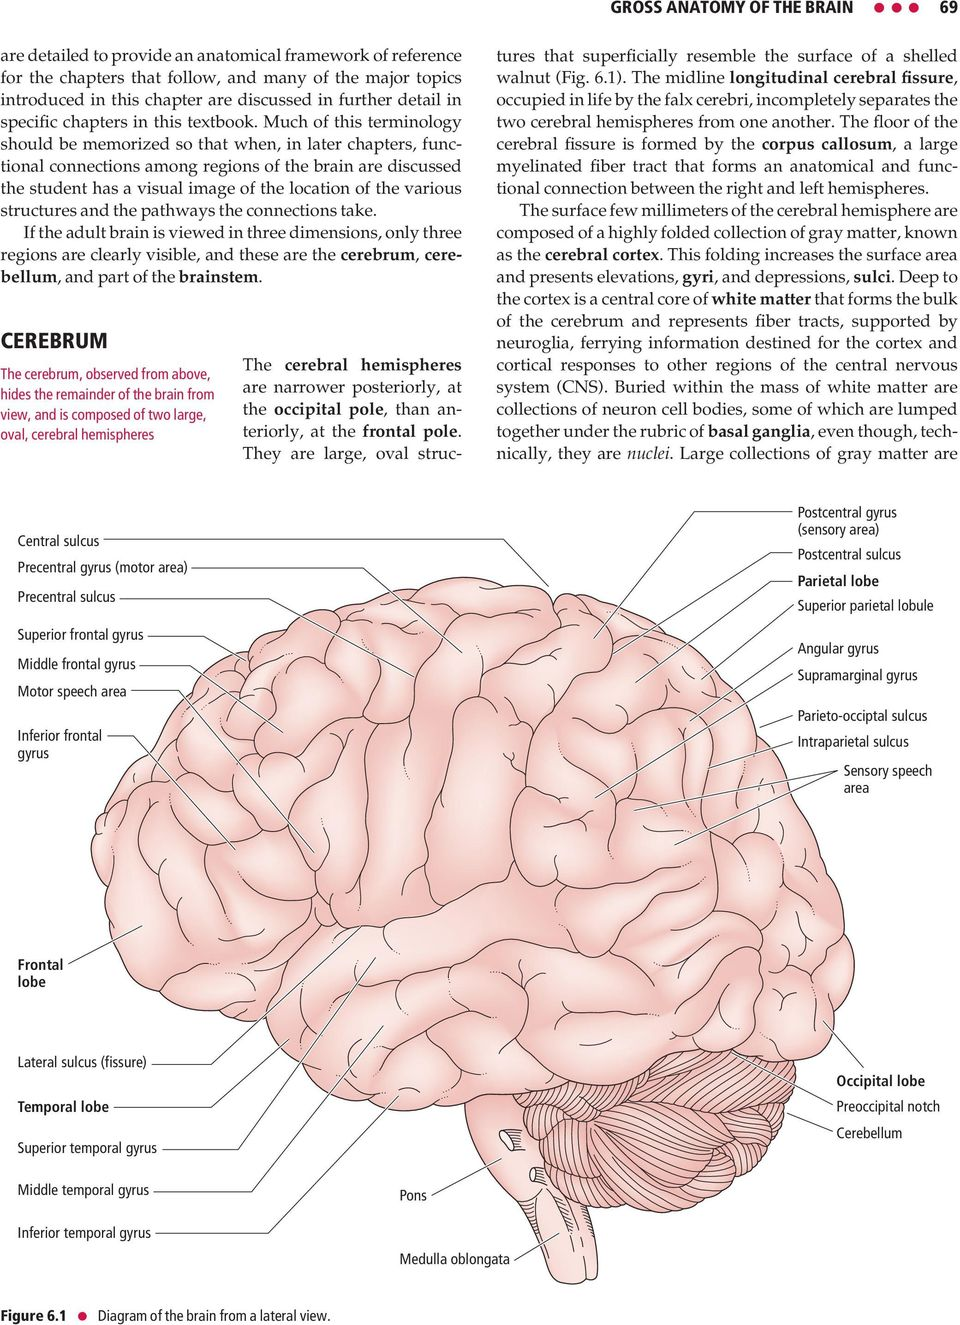 Much of this terminology should be memorized so that when, in later chapters, functional connections among regions of the brain are discussed the student has a visual image of the location of the